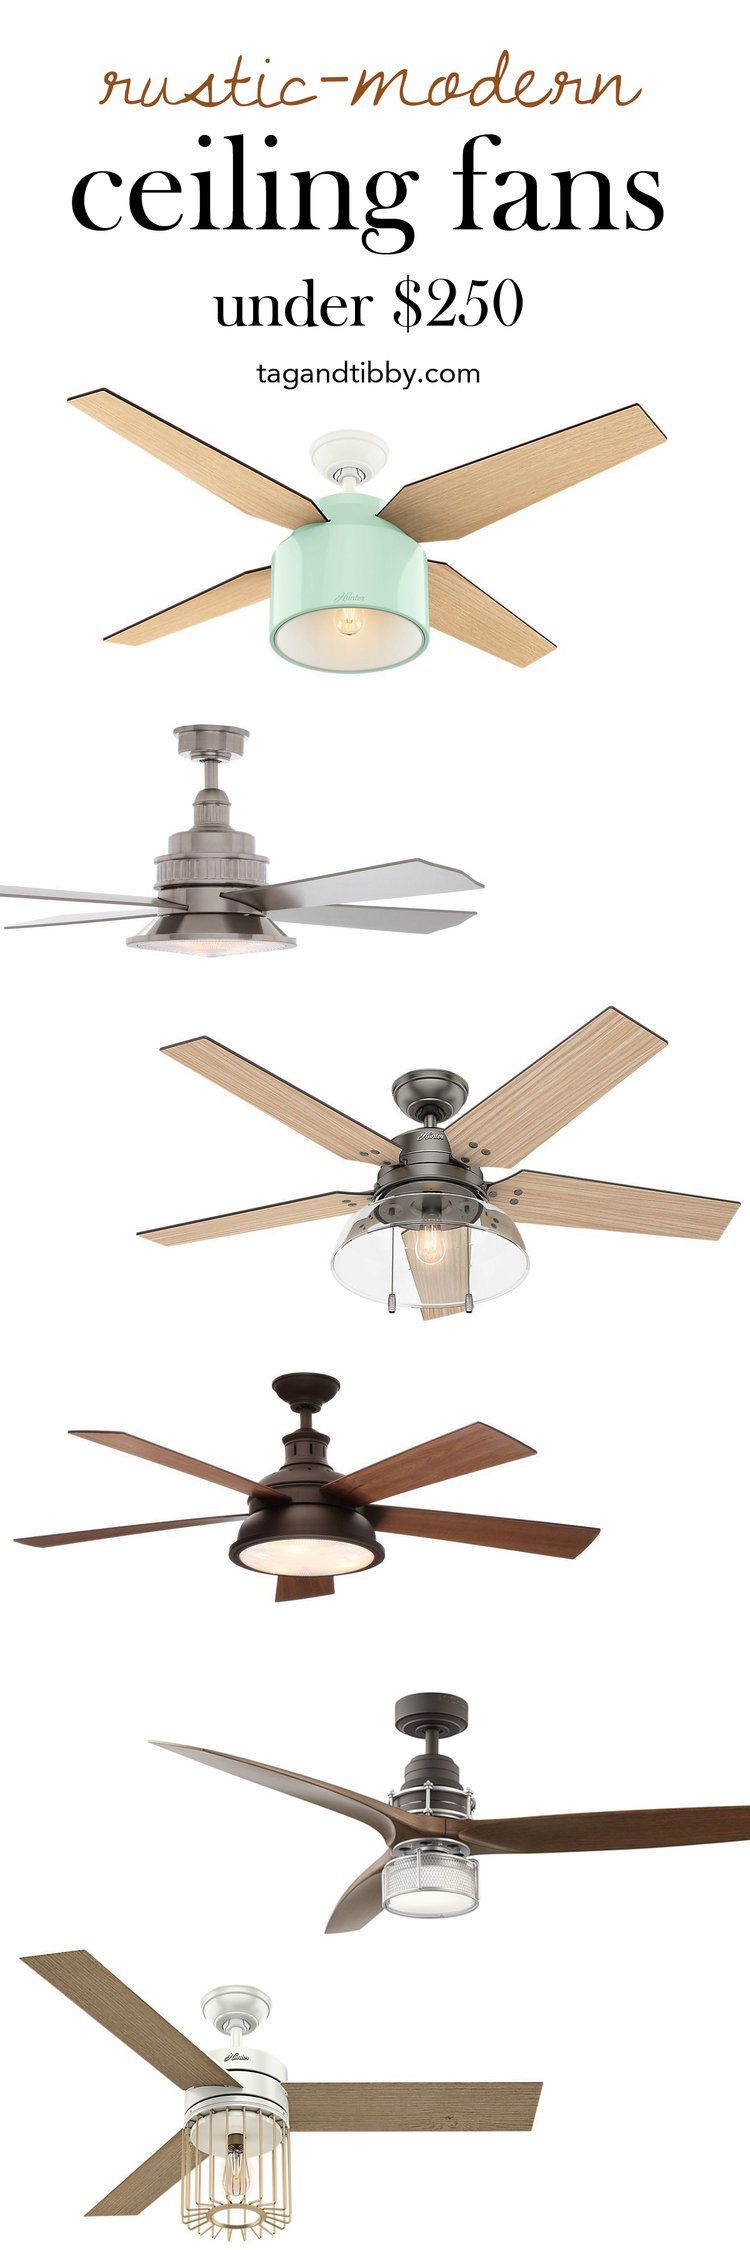 8 ceiling fans for under 250